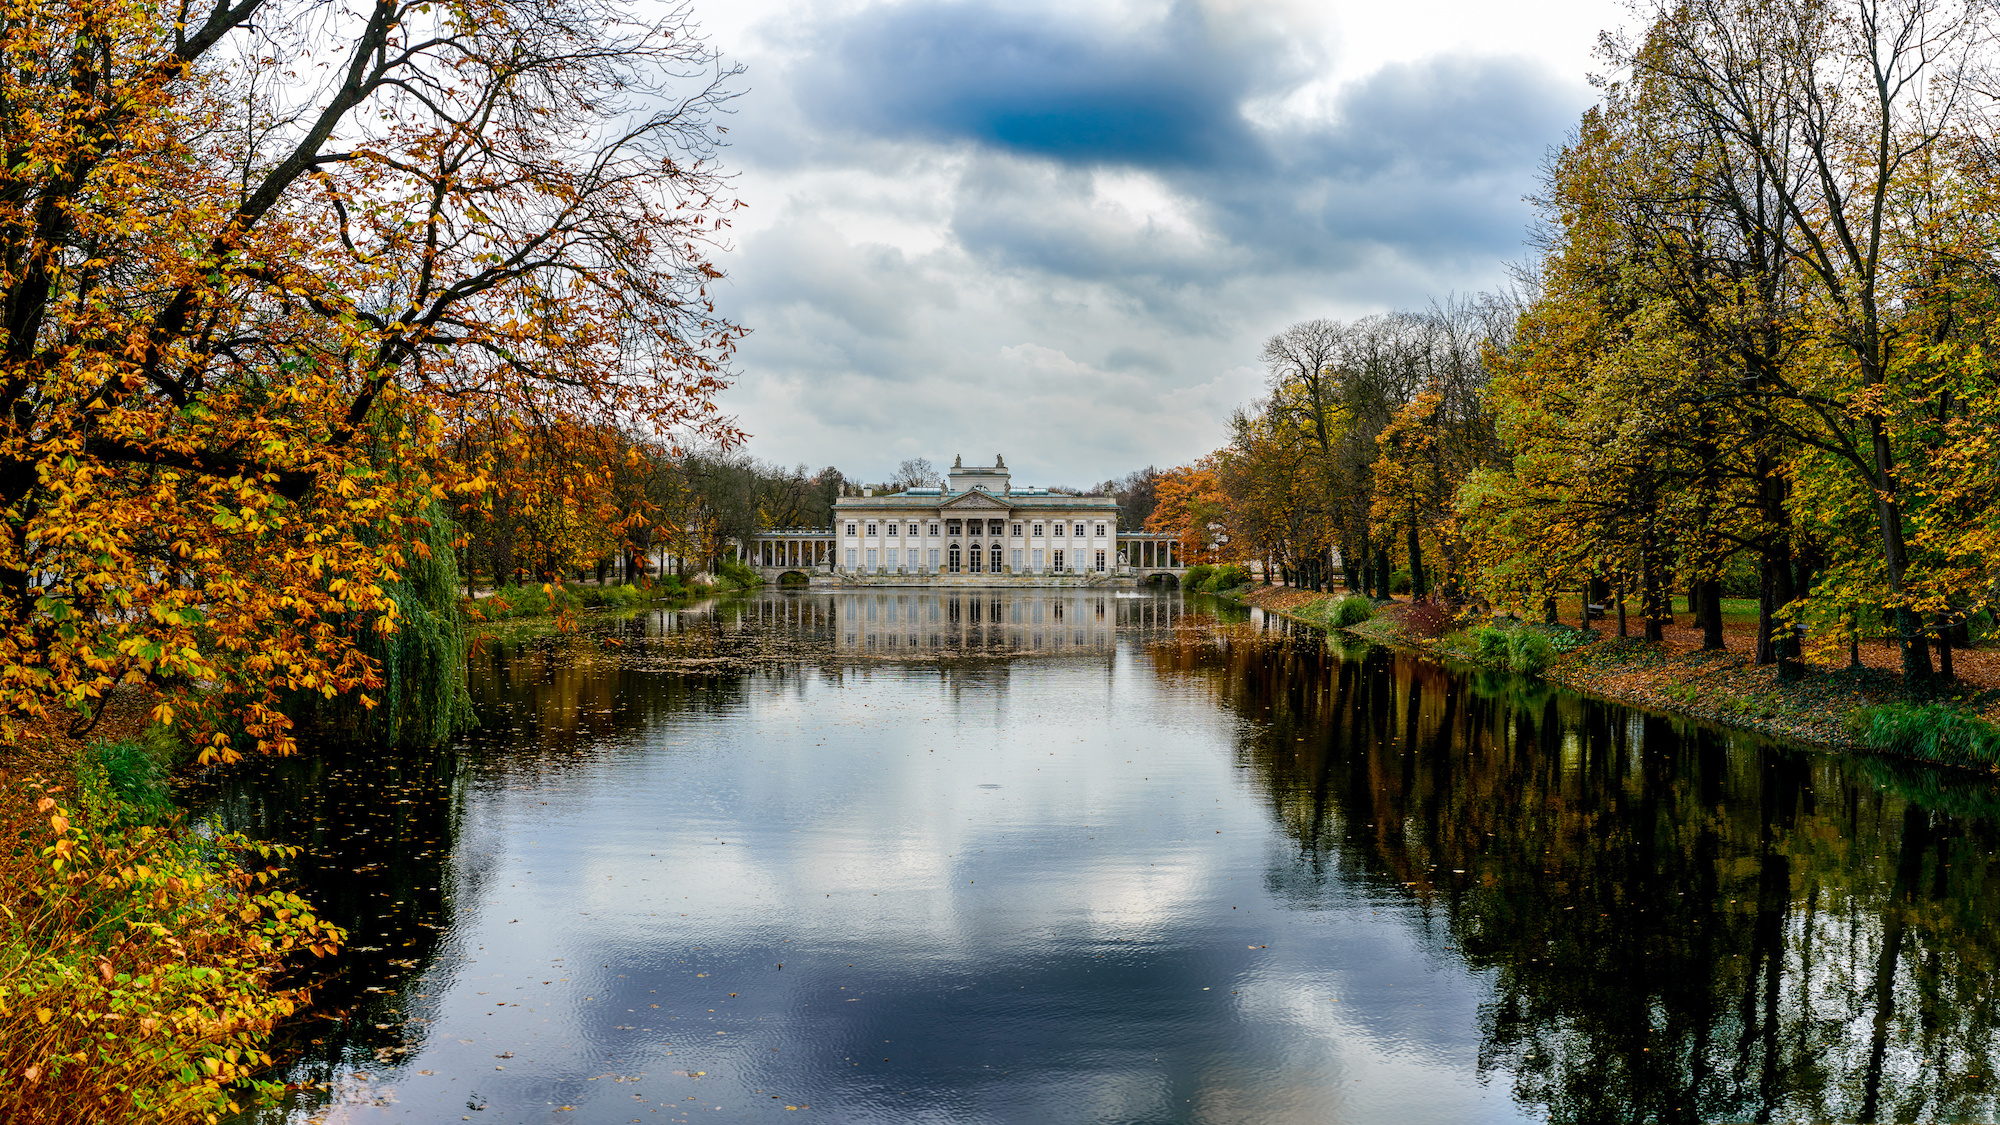 Palace on the water in Lazienki Park in Warsaw during autumn